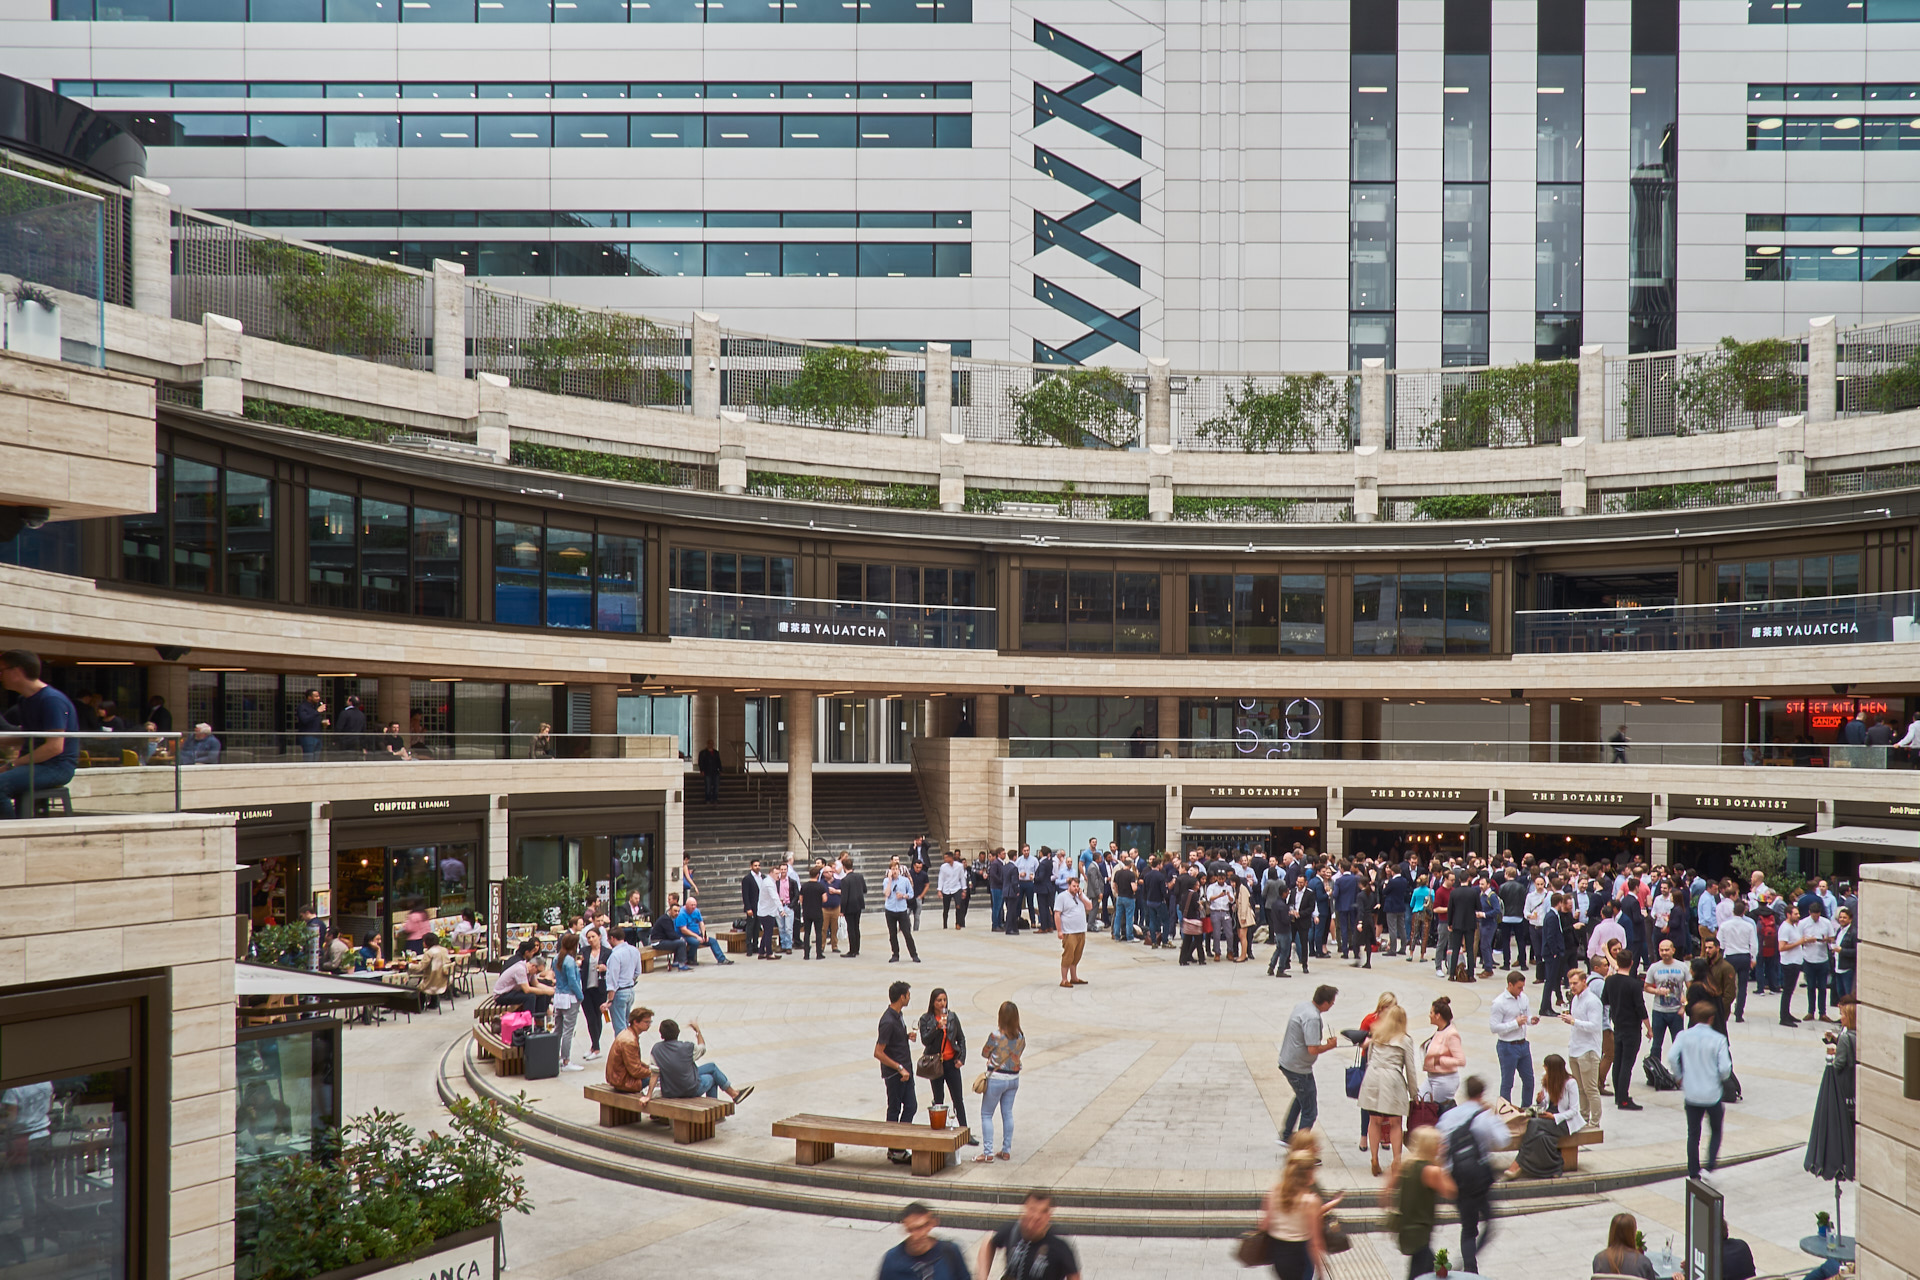 Broadgate Circus in 2016, background: 5 Broadgate, Make Architects, 2016.